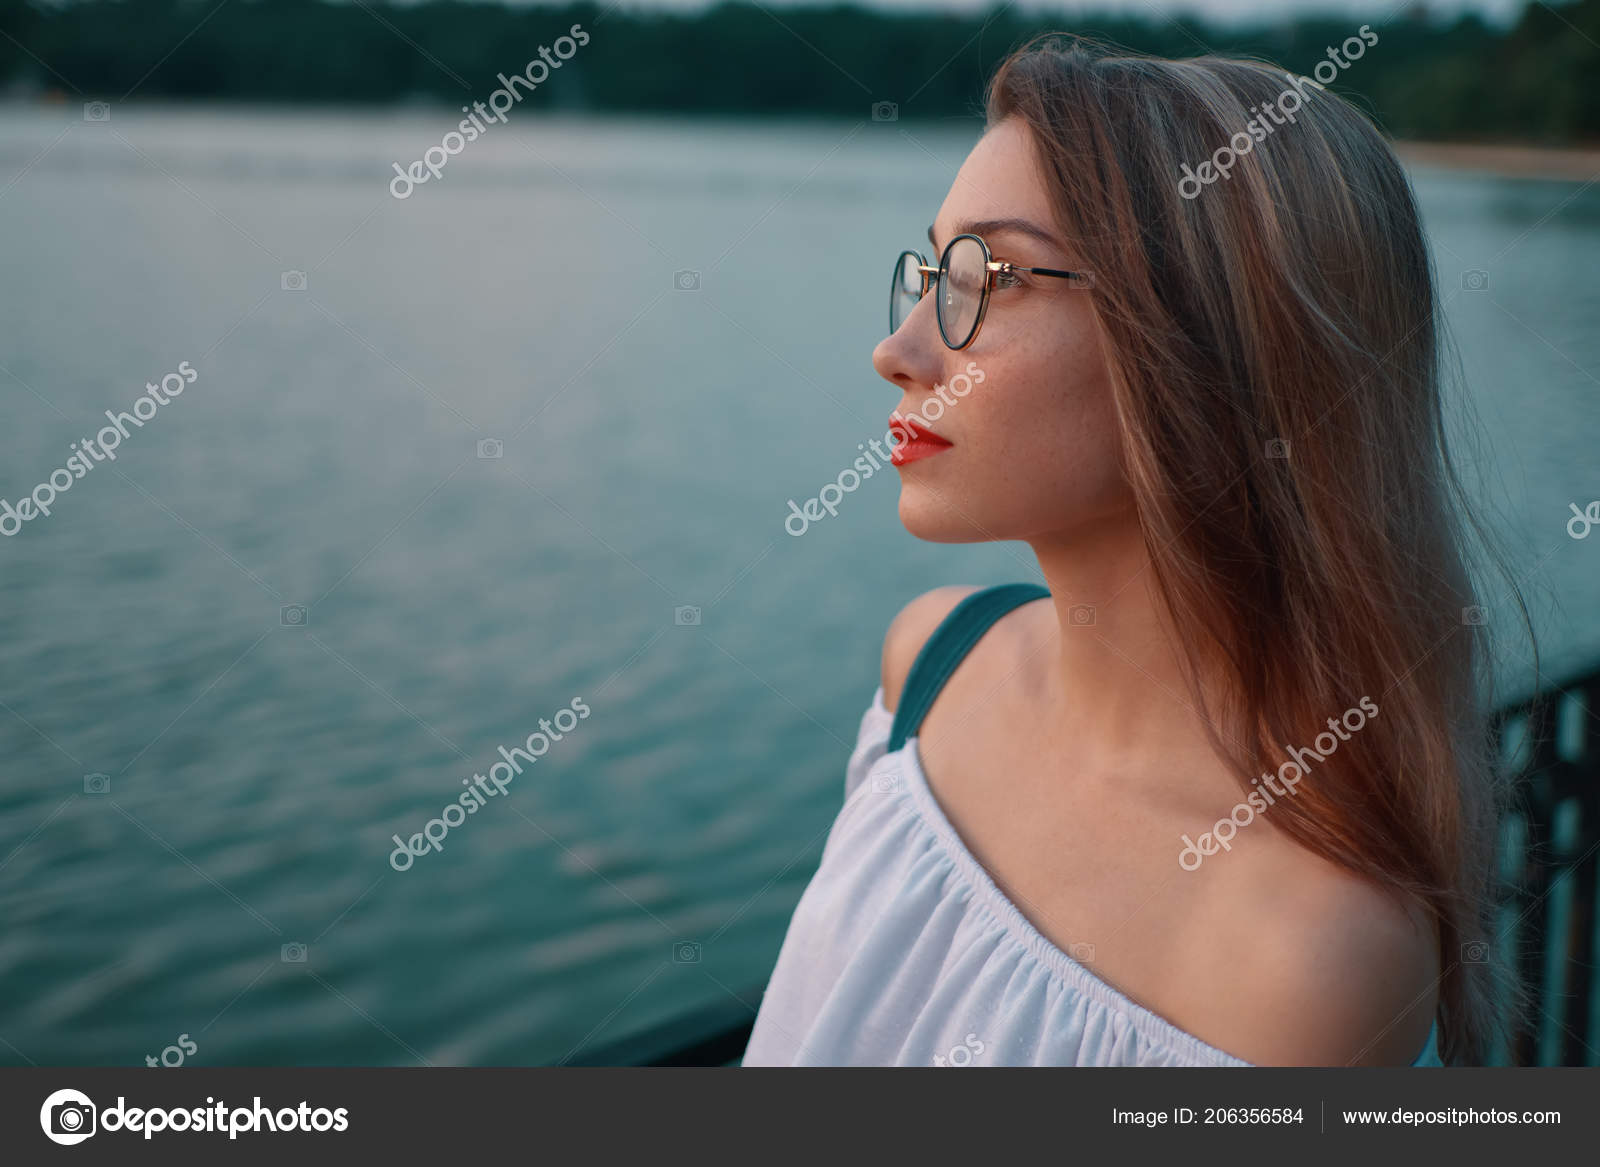 awesome profile pic for girl